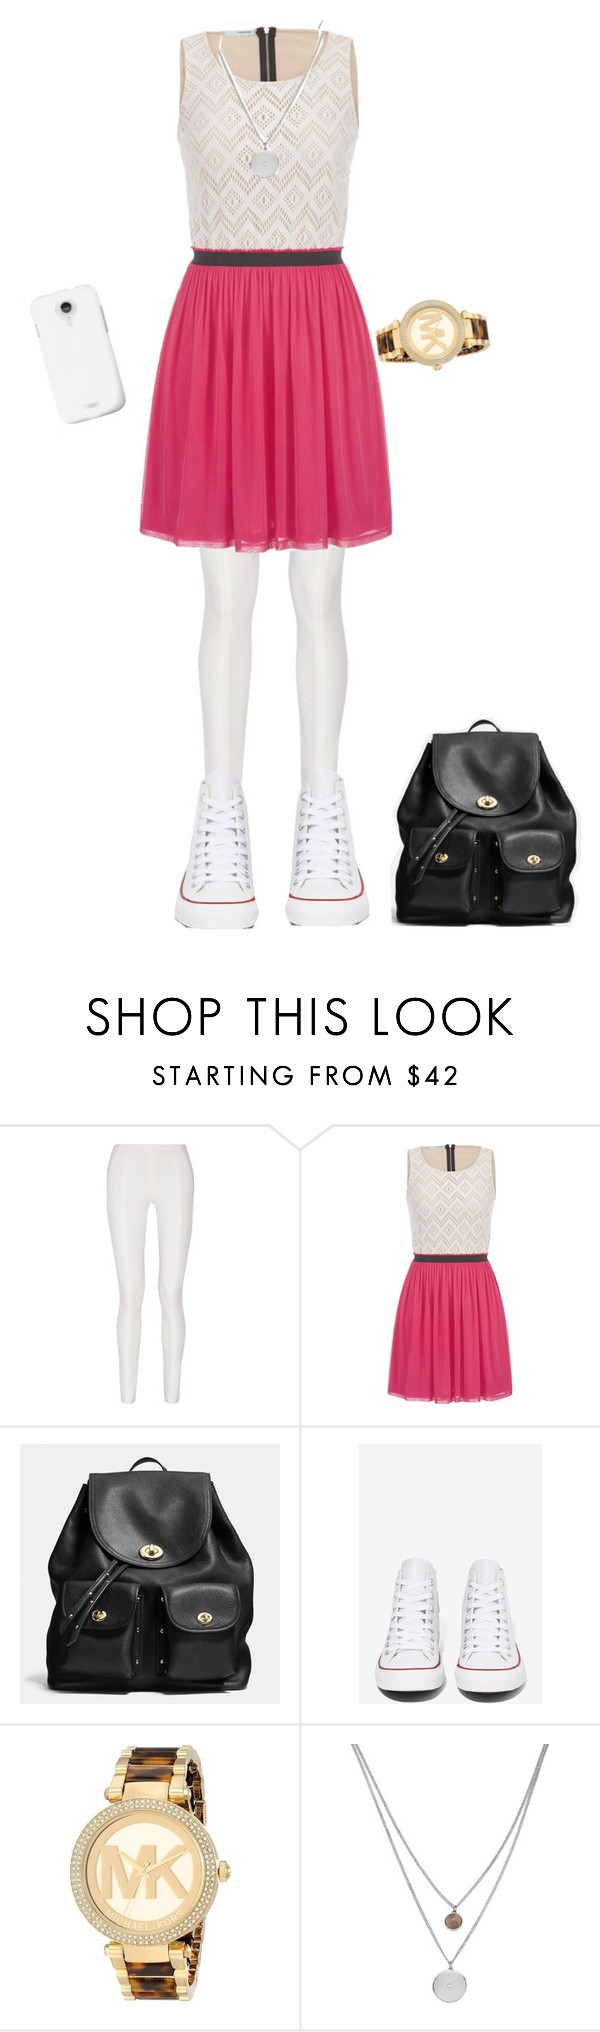 """""""cute girl"""" by nina00-i ❤ liked on Polyvore featuring Donna Karan, maurices, Coach, Converse, Michael Kors, Kenneth Cole, women's clothing, women, female and woman"""